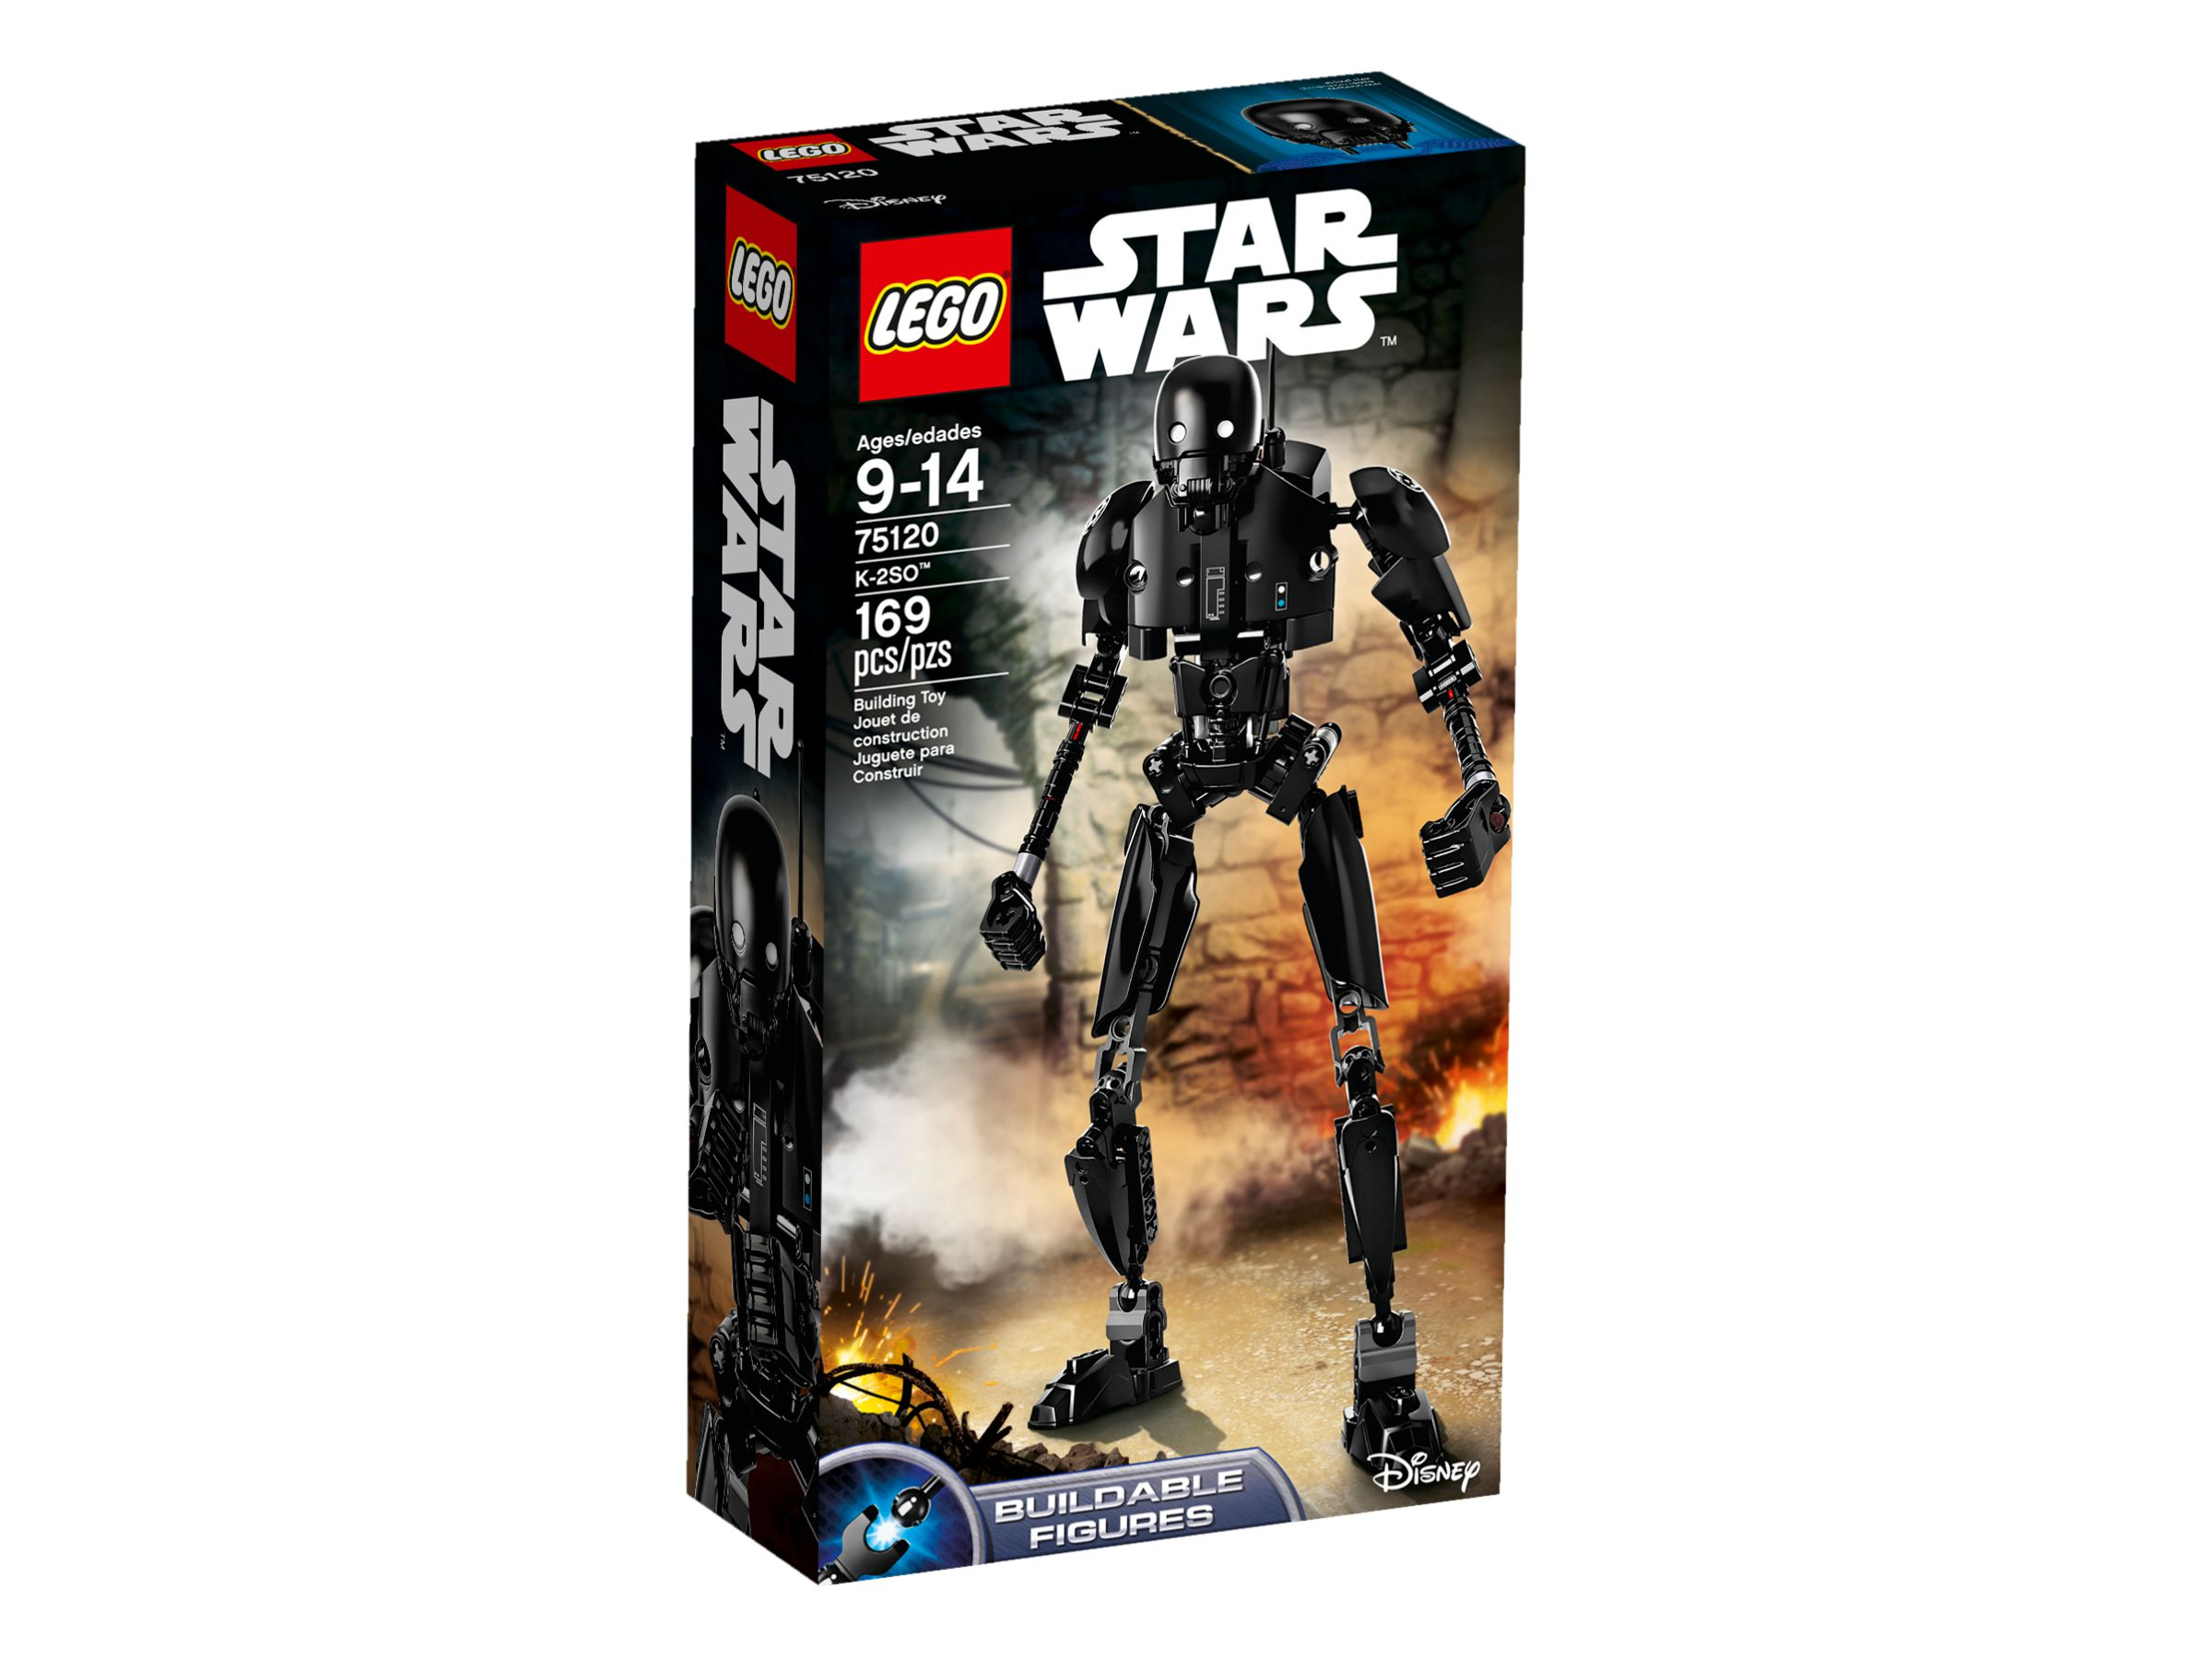 LEGO Star Wars Buildable Figures 75120 K-2SO™ LEGO_75120_alt1.jpg